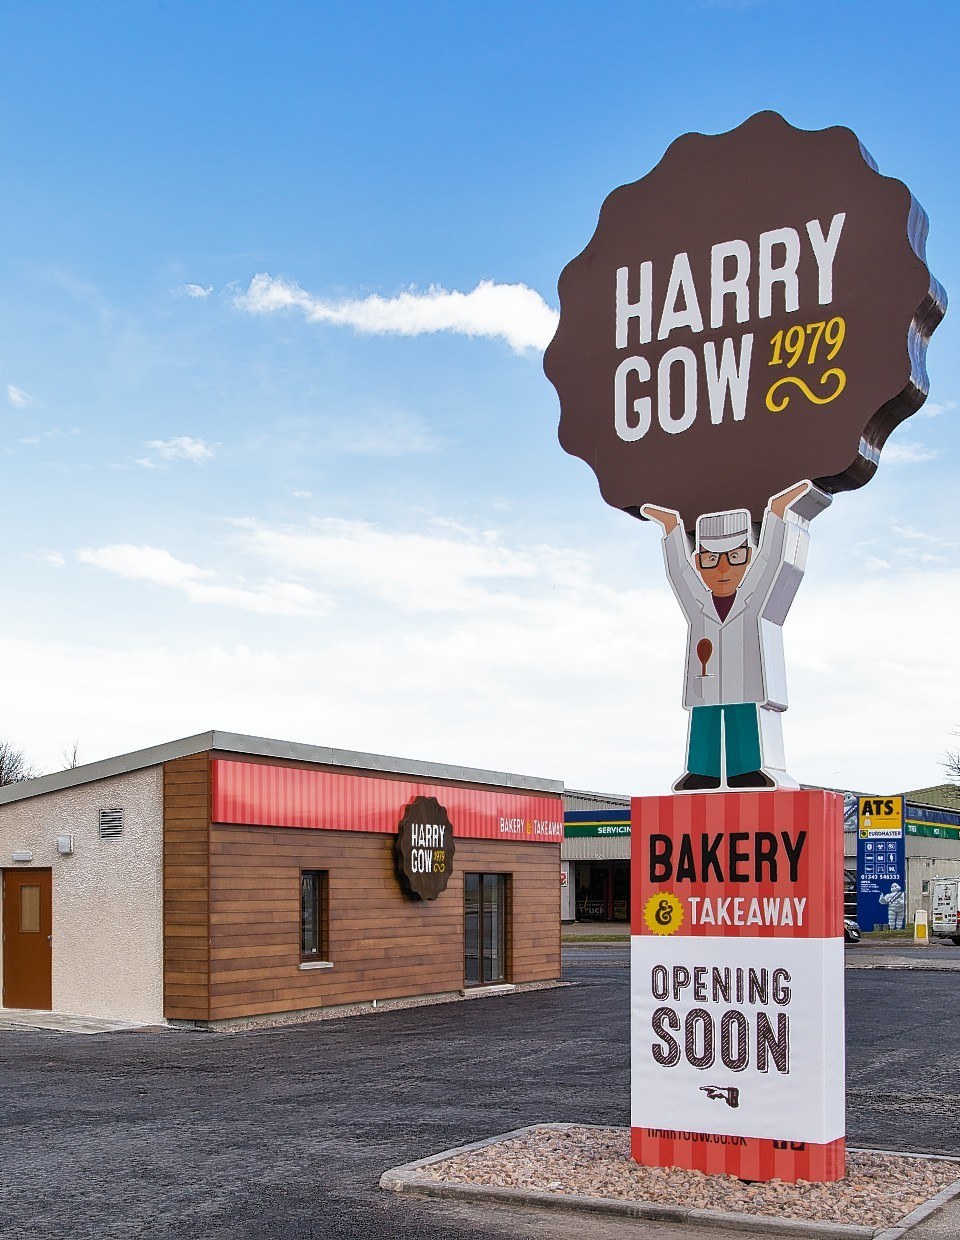 The new Harry Gow premises in Elgin which is due to open early March